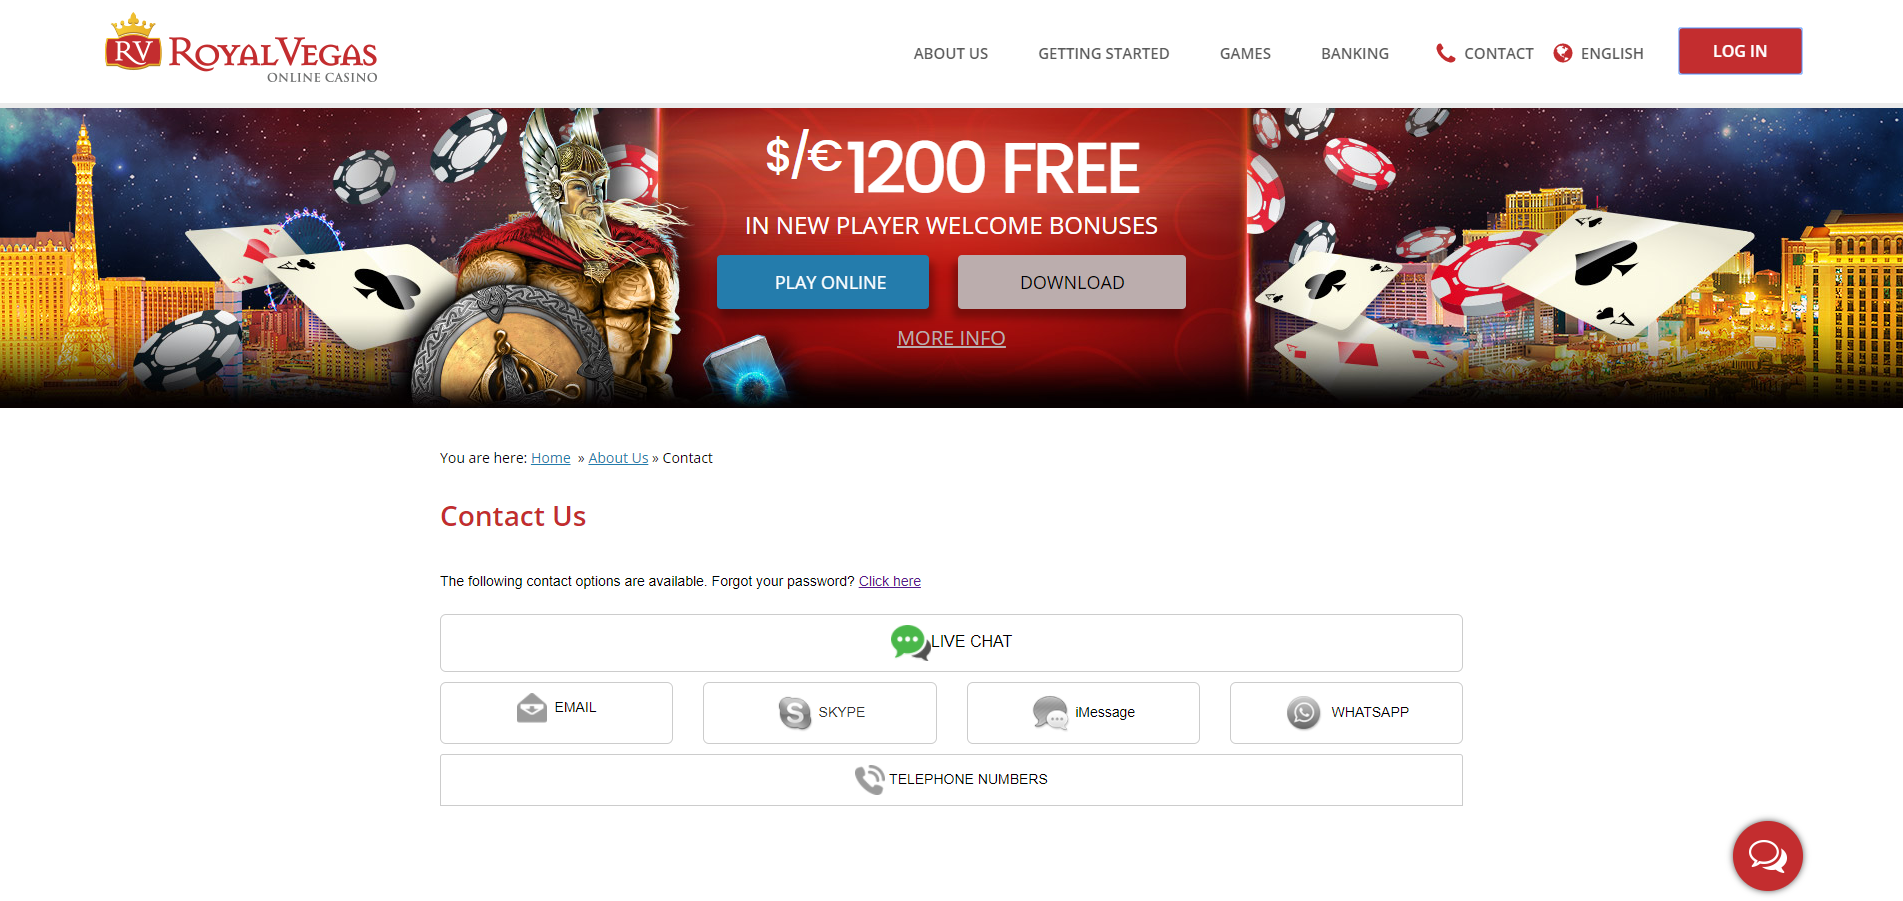 Thebes Casino Online Review With Promotions & Bonuses